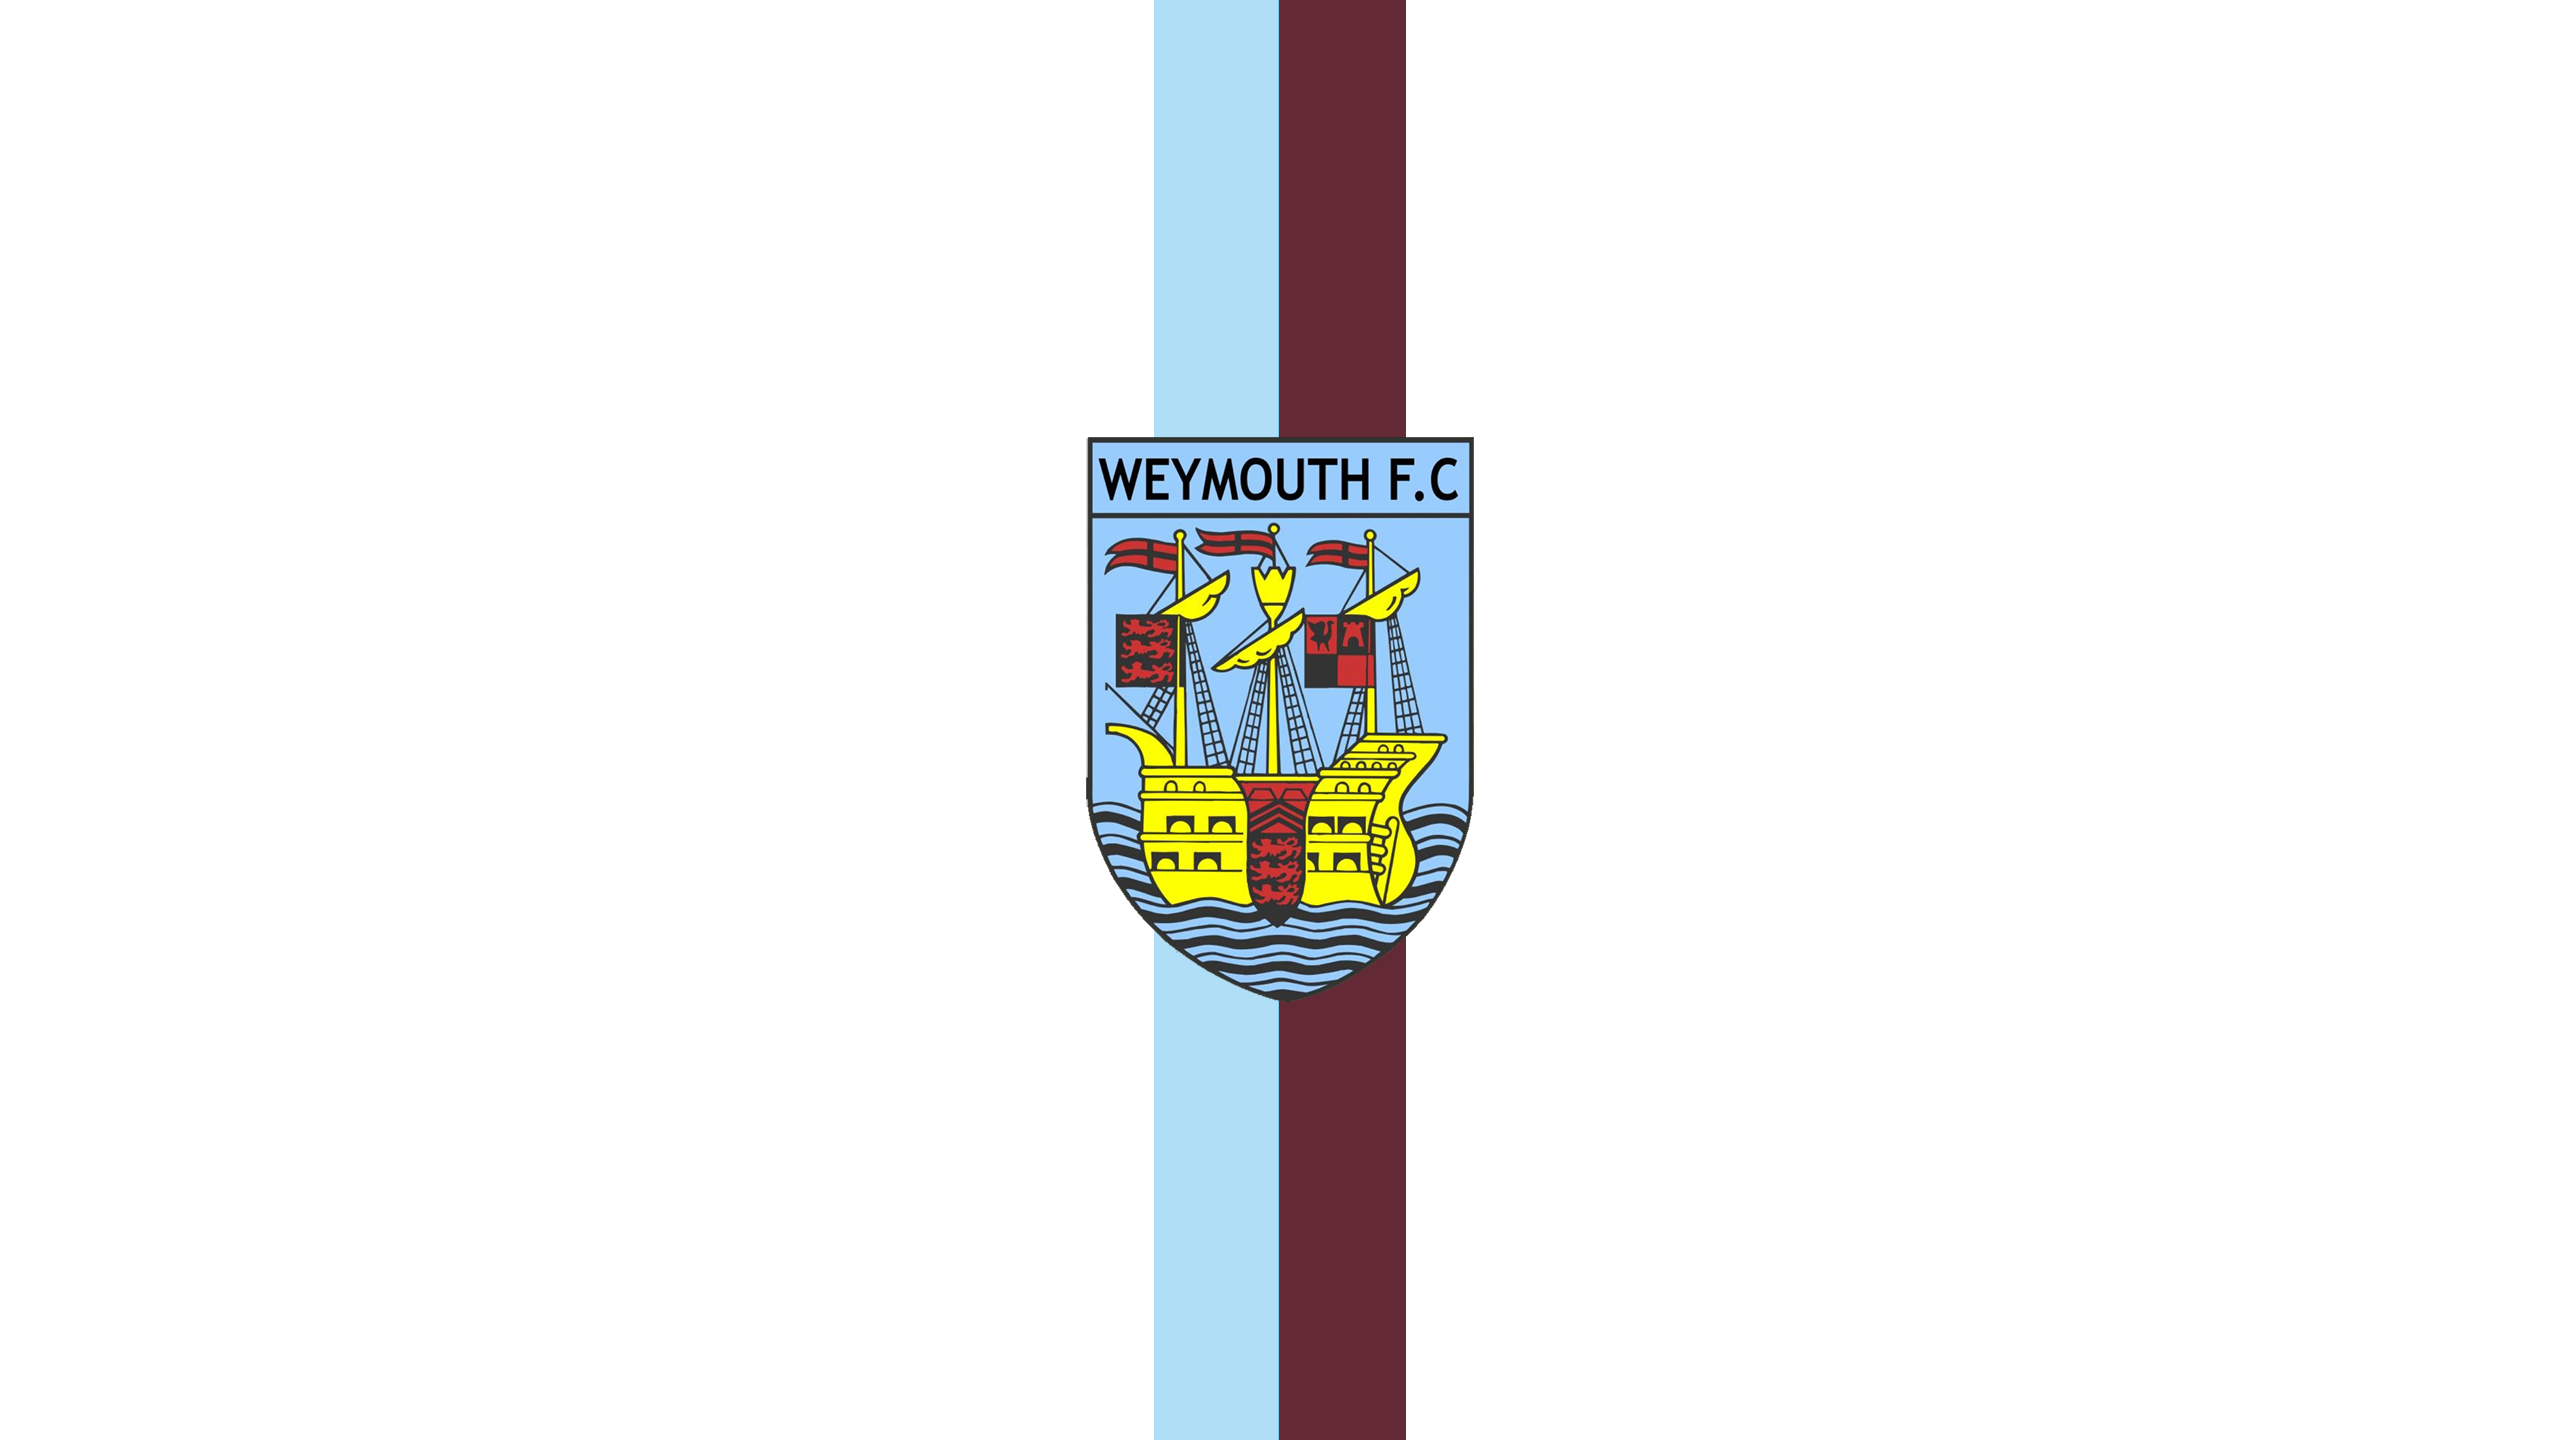 Weymouth FC (Away)